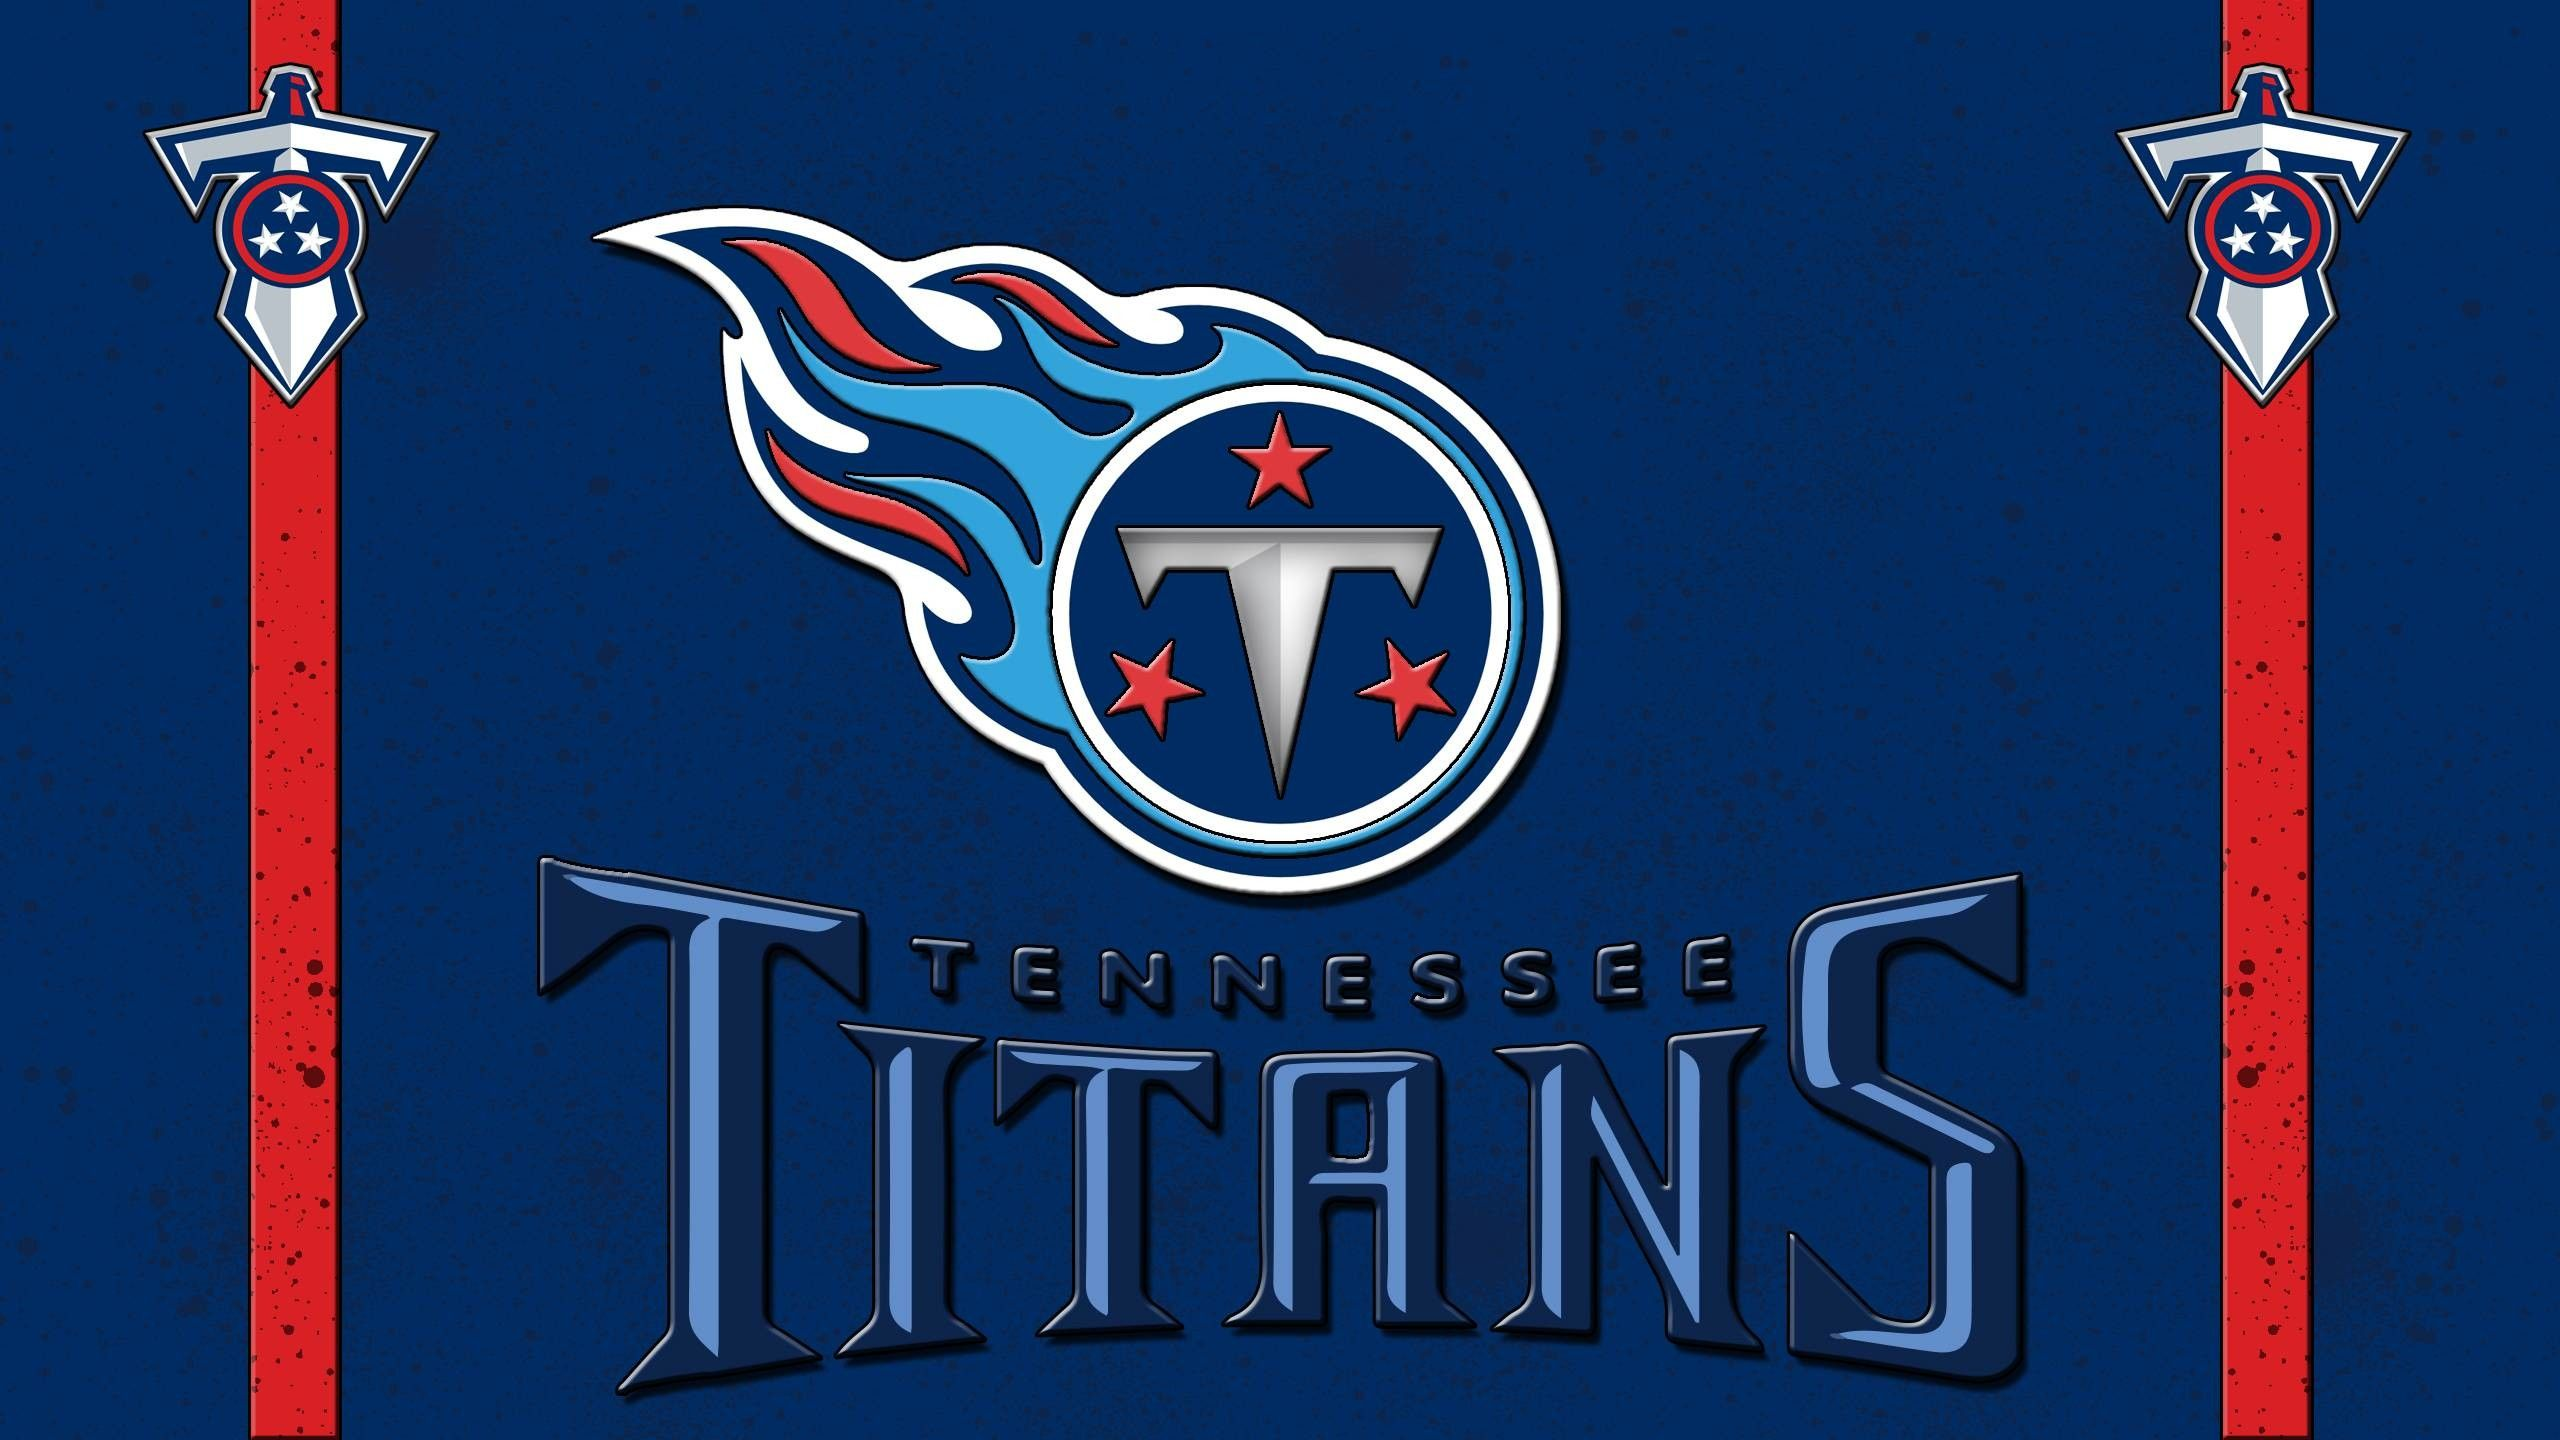 Tennessee Titans Wallpapers Top Free Tennessee Titans Backgrounds Wallpaperaccess